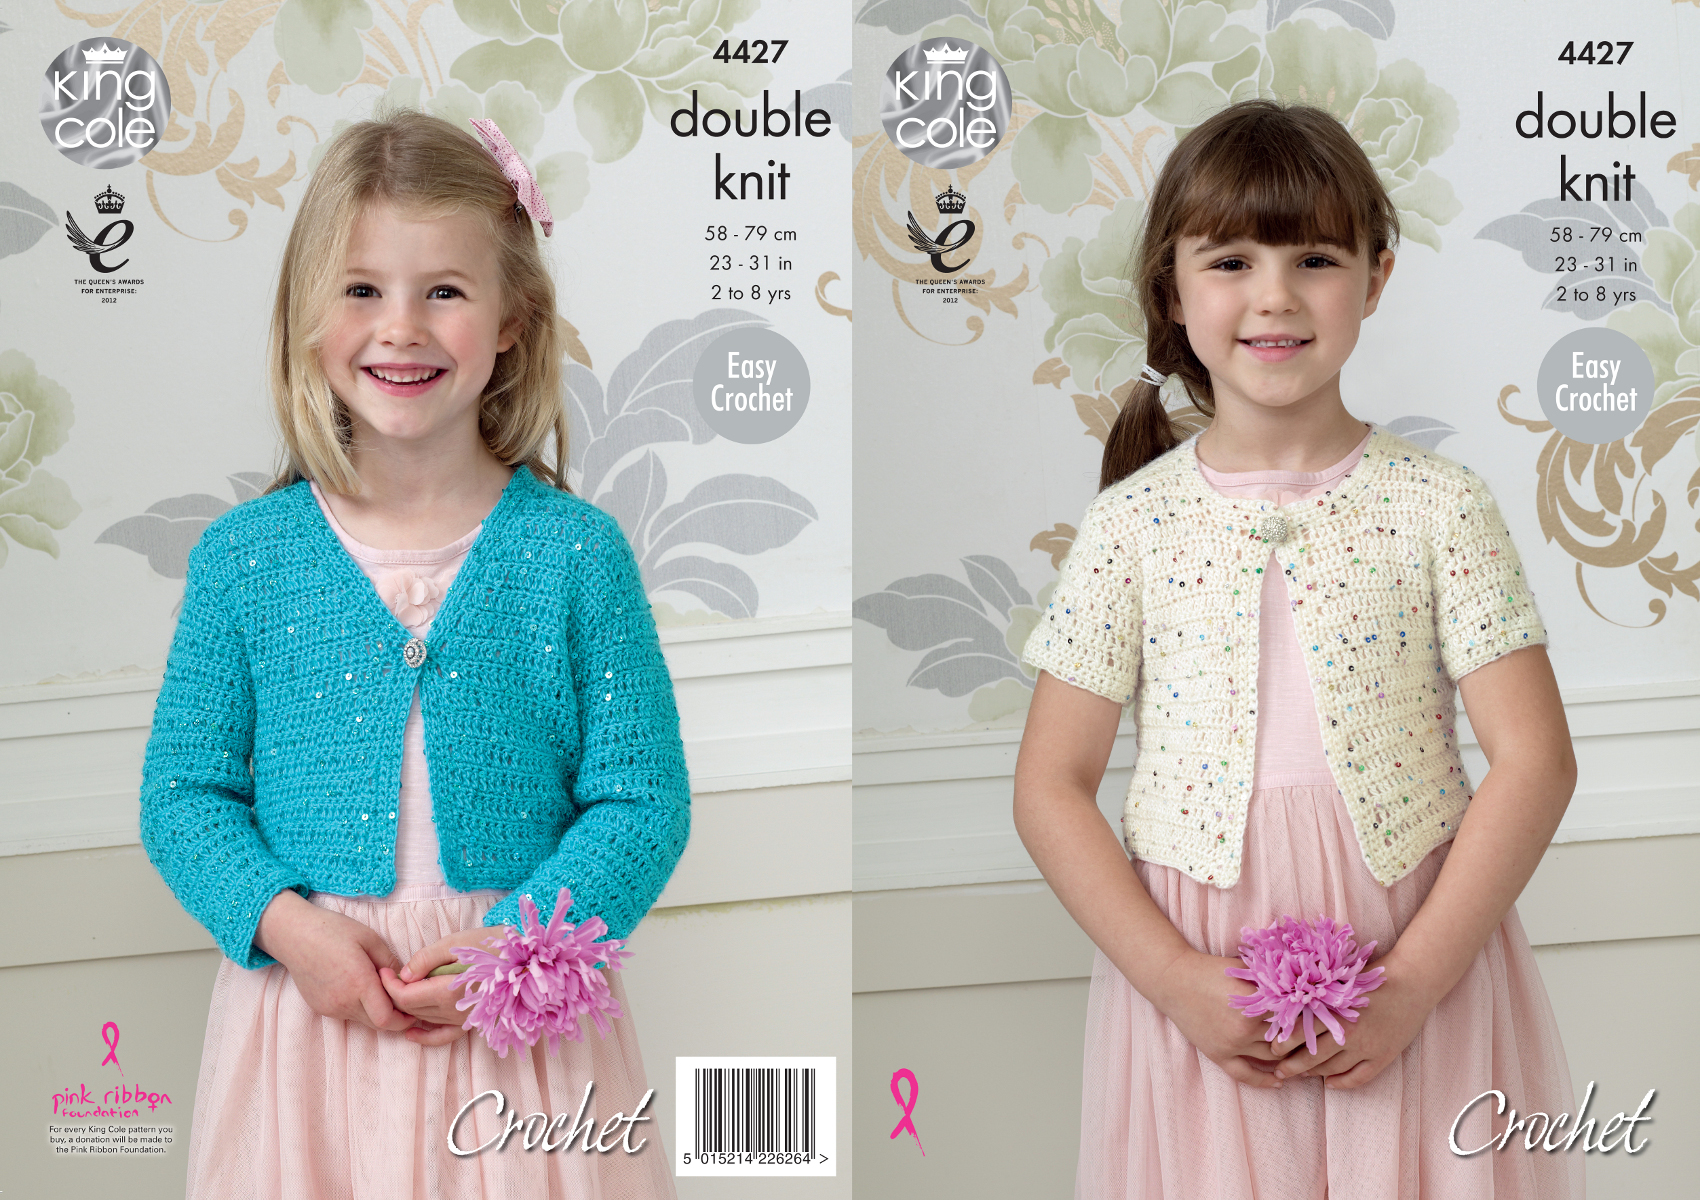 King cole double knit easy crochet pattern girls cropped cardigan king cole double knit easy crochet pattern girls cropped cardigan galaxy dk 4427 bankloansurffo Images